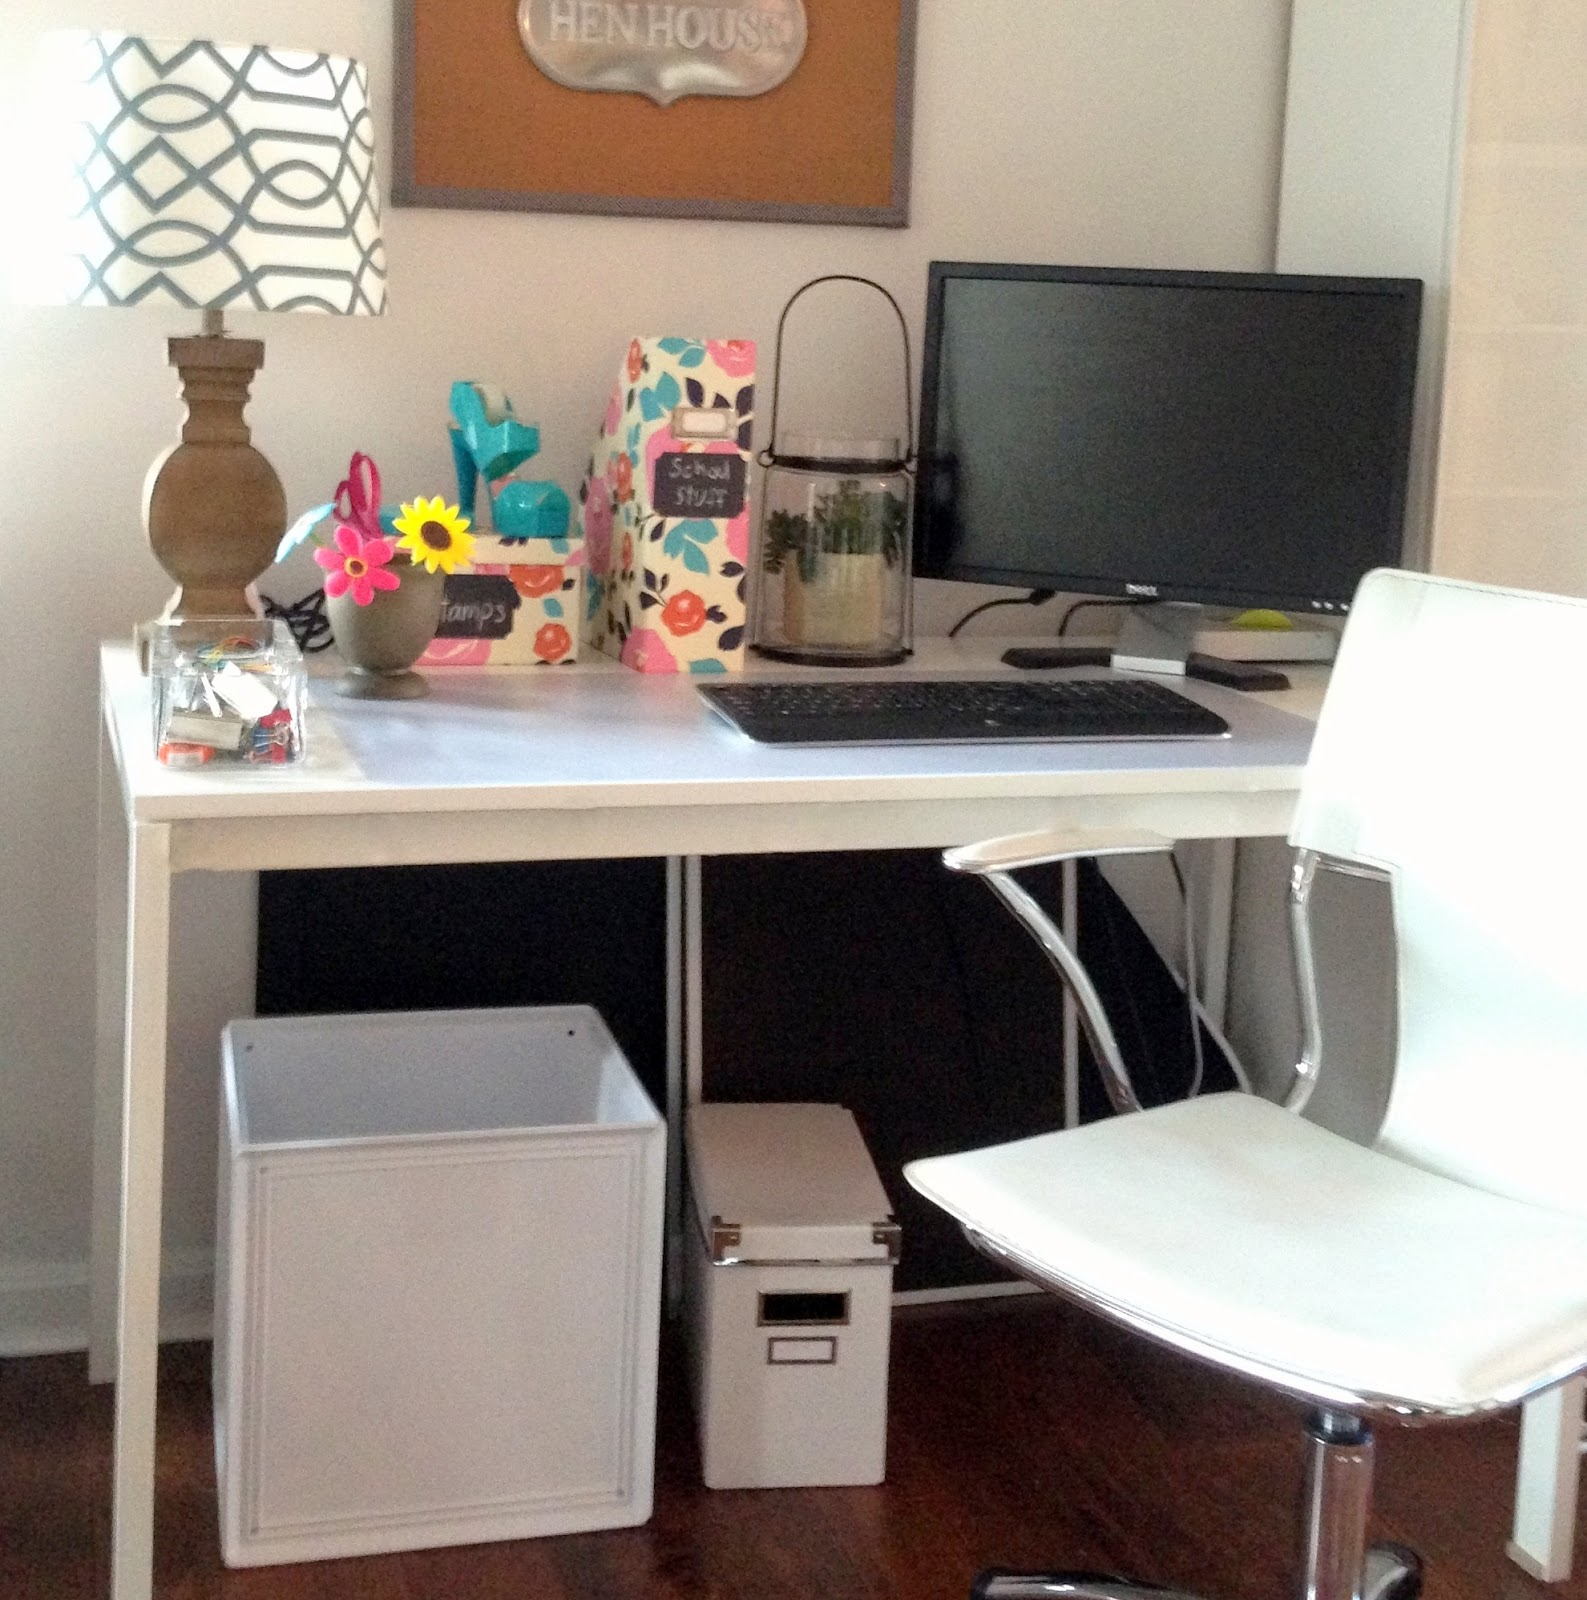 Looking for an instant way to hide your 'under desk' clutter?